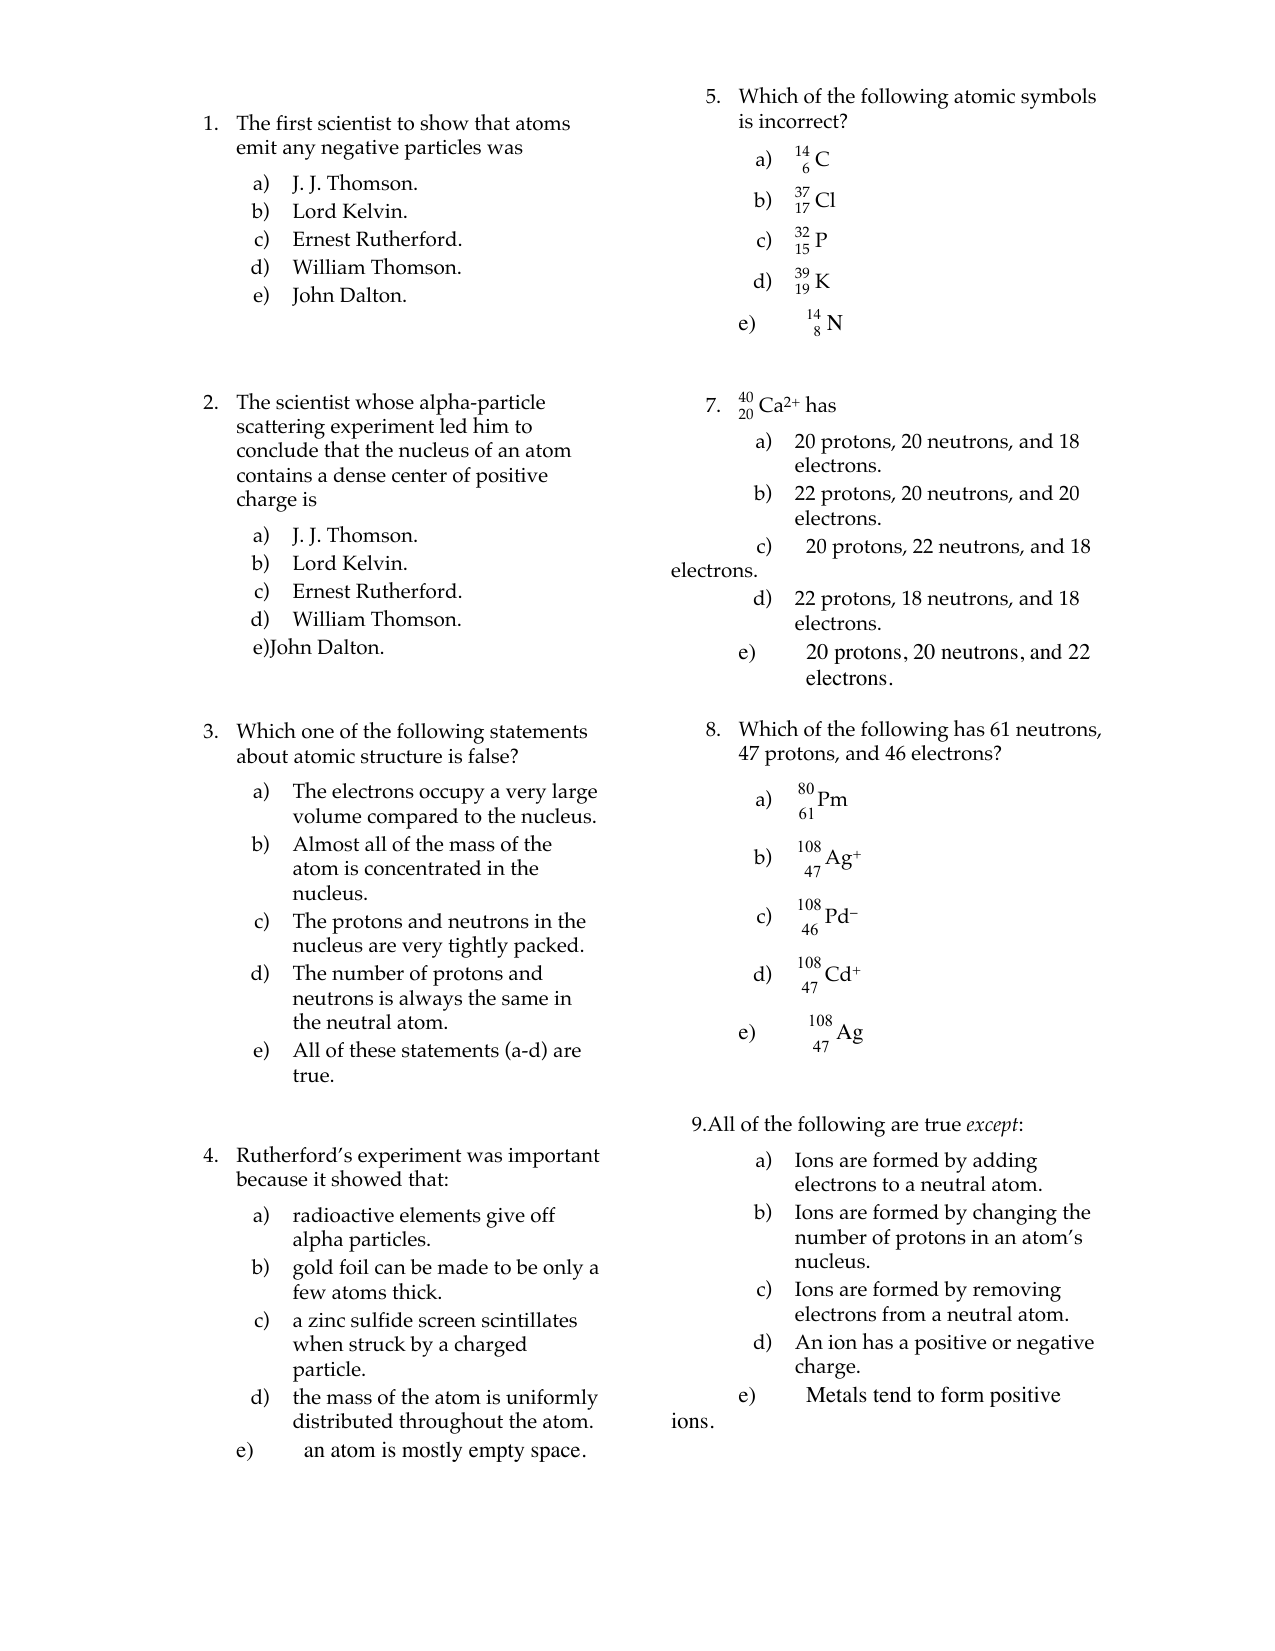 History Of The Atom Worksheet Lord Ernest Rutherford